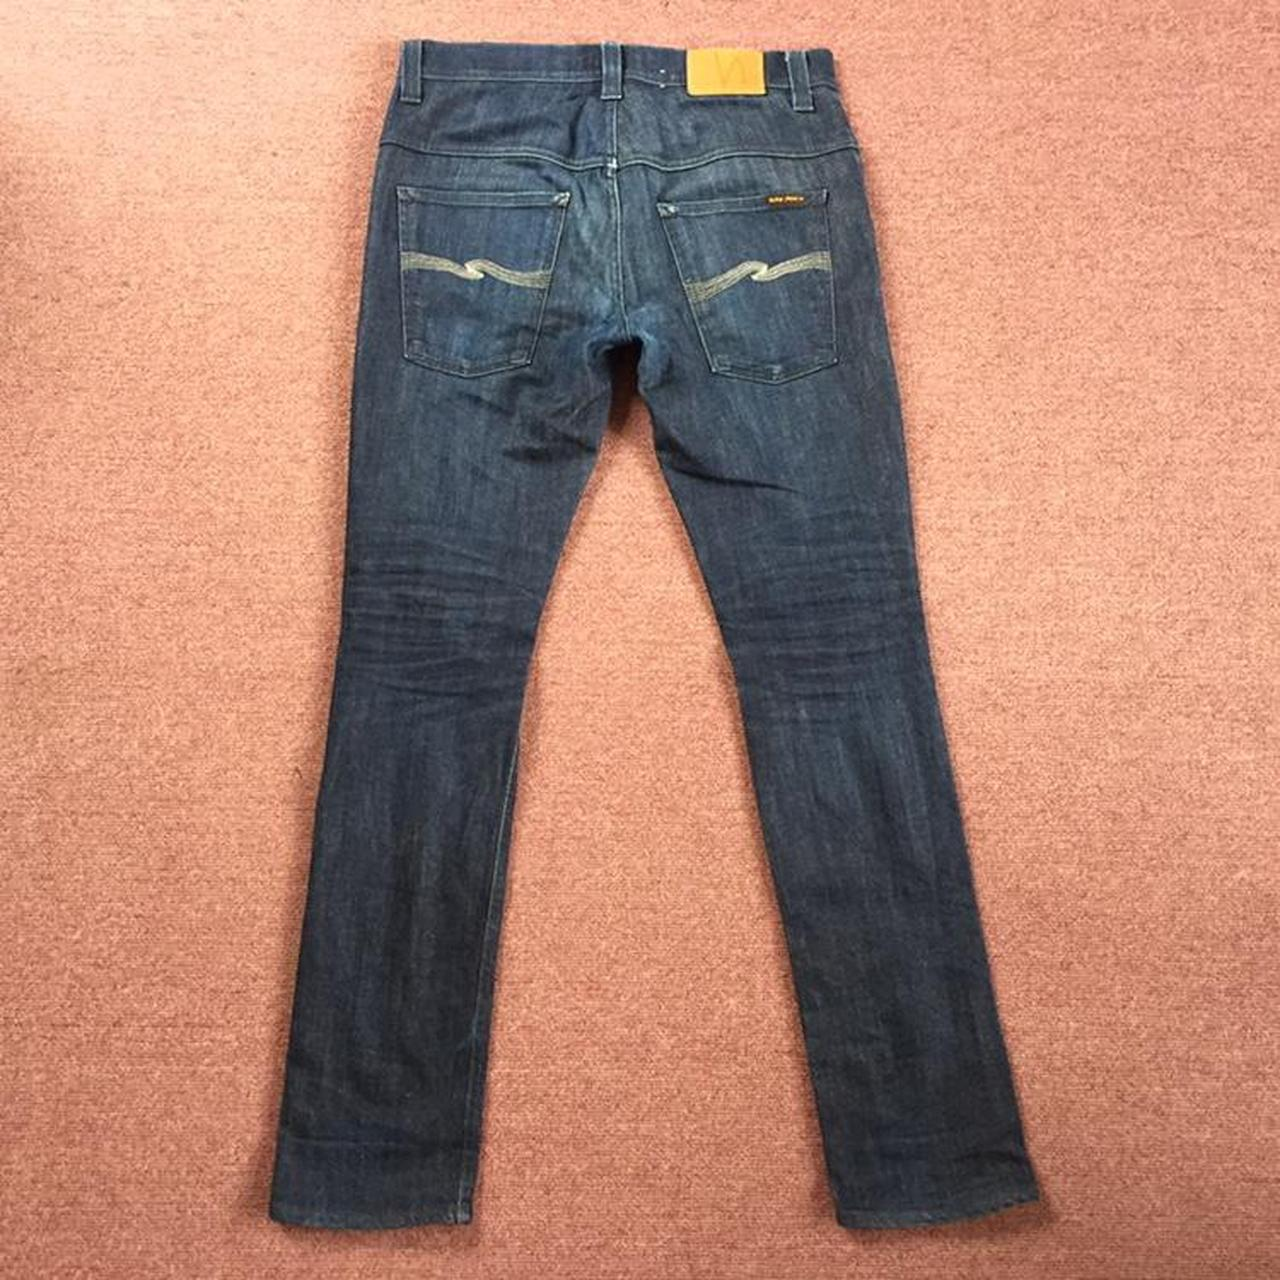 Product Image 1 - Nudie Jeans Co Tape Ted